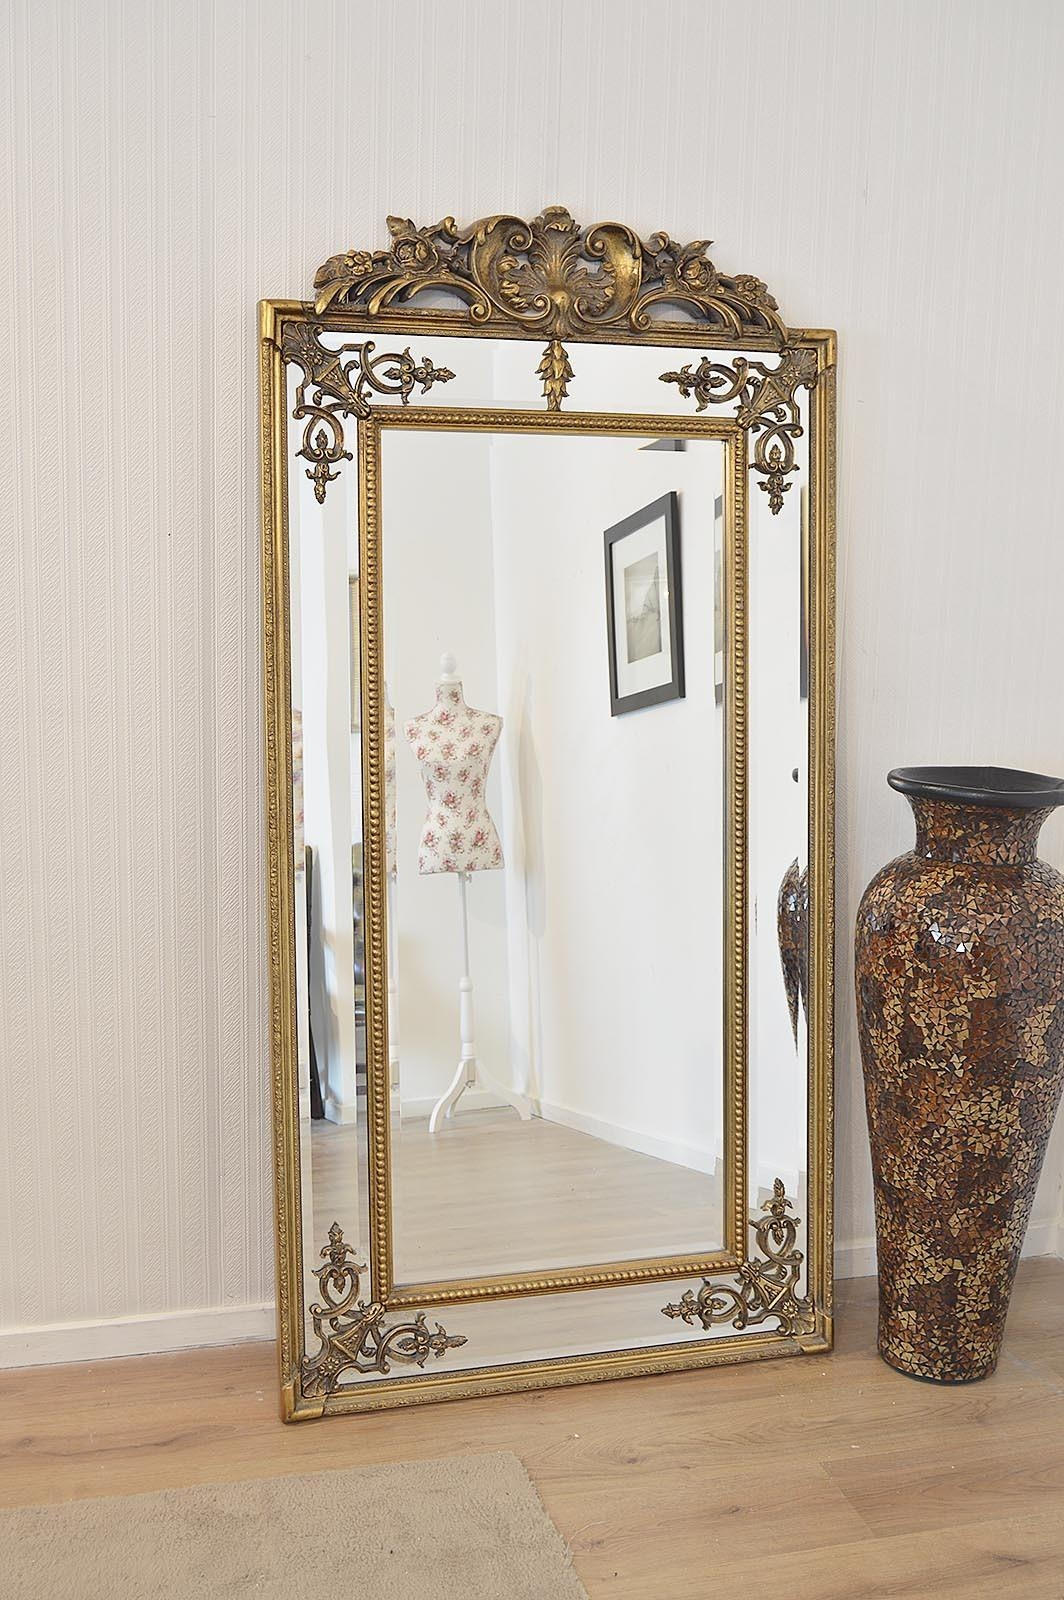 Ornate Mirrors For Sale 77 Inspiring Style For Hollywood Regency Inside Mirrors Ornate (Image 15 of 20)